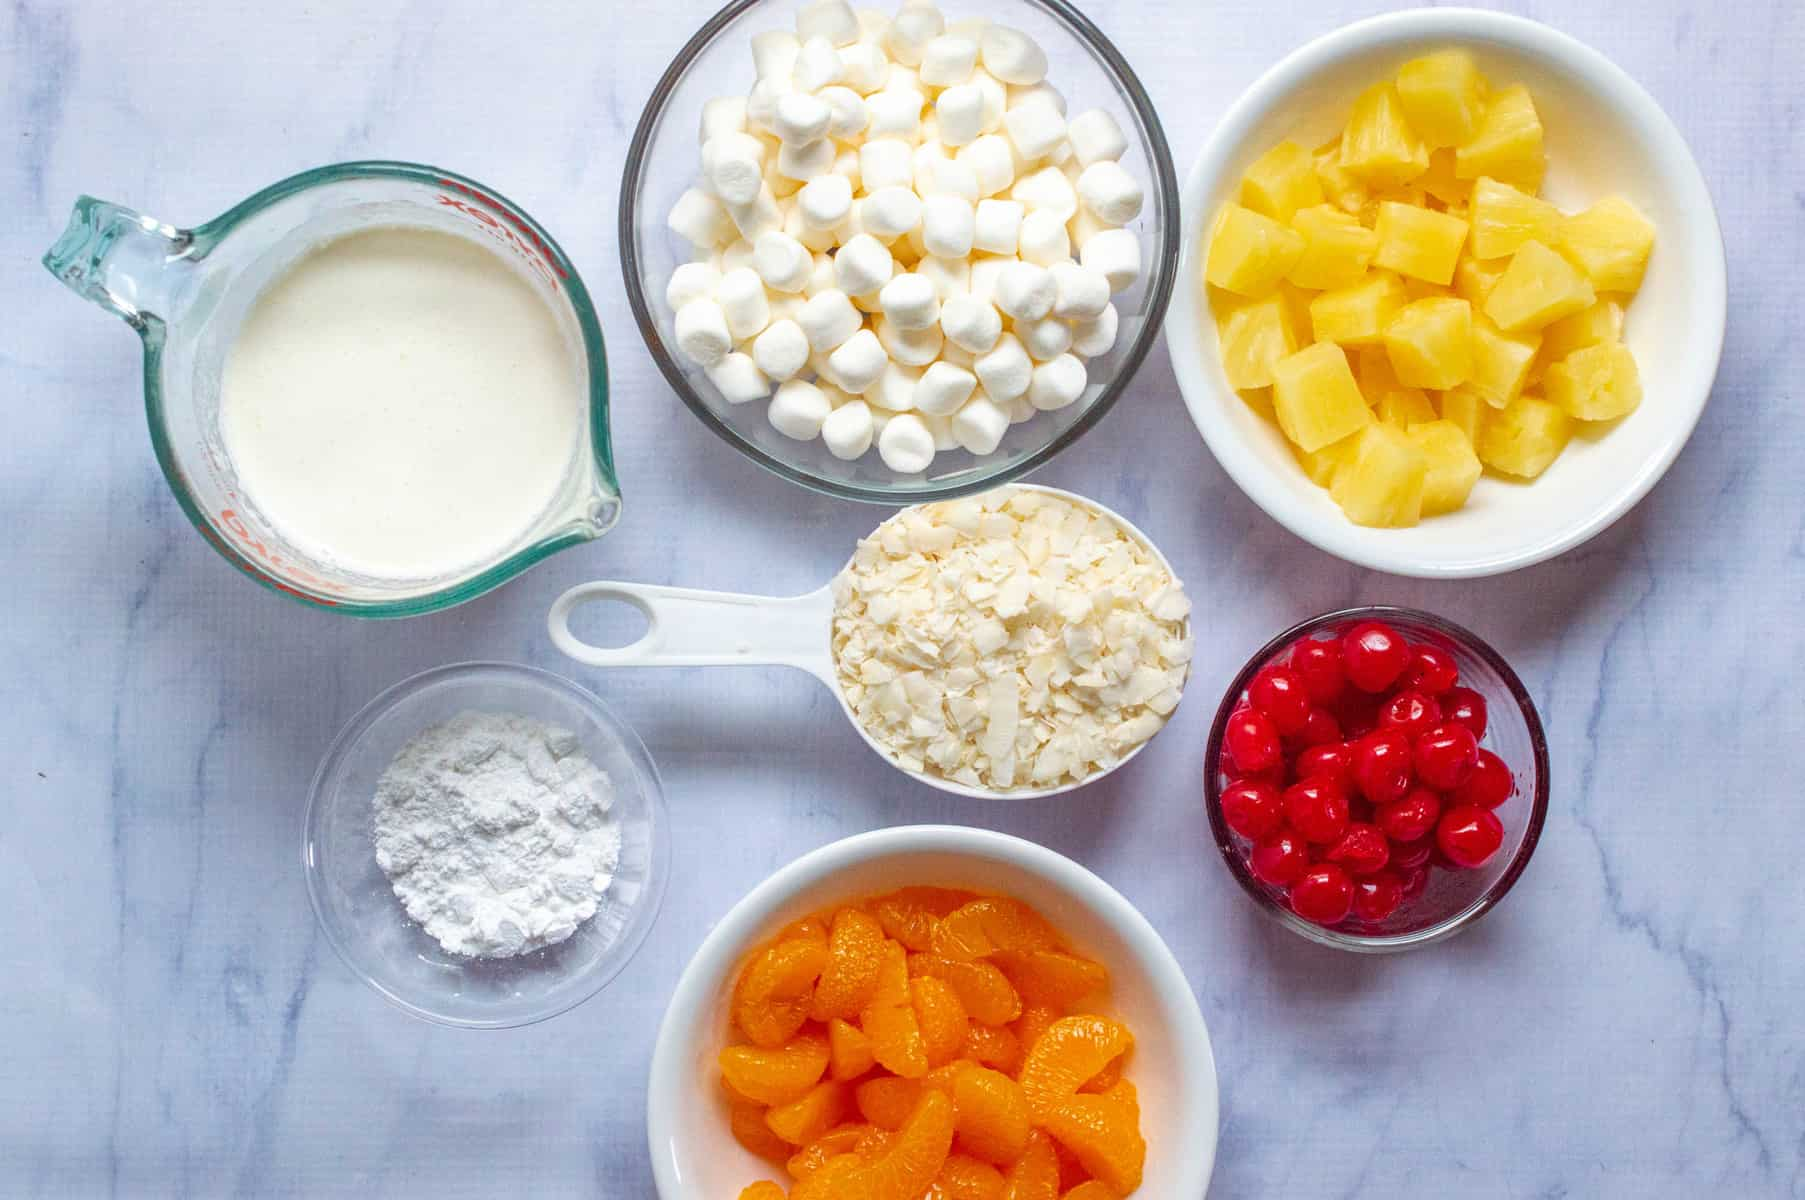 ingredients for ambrosia salad